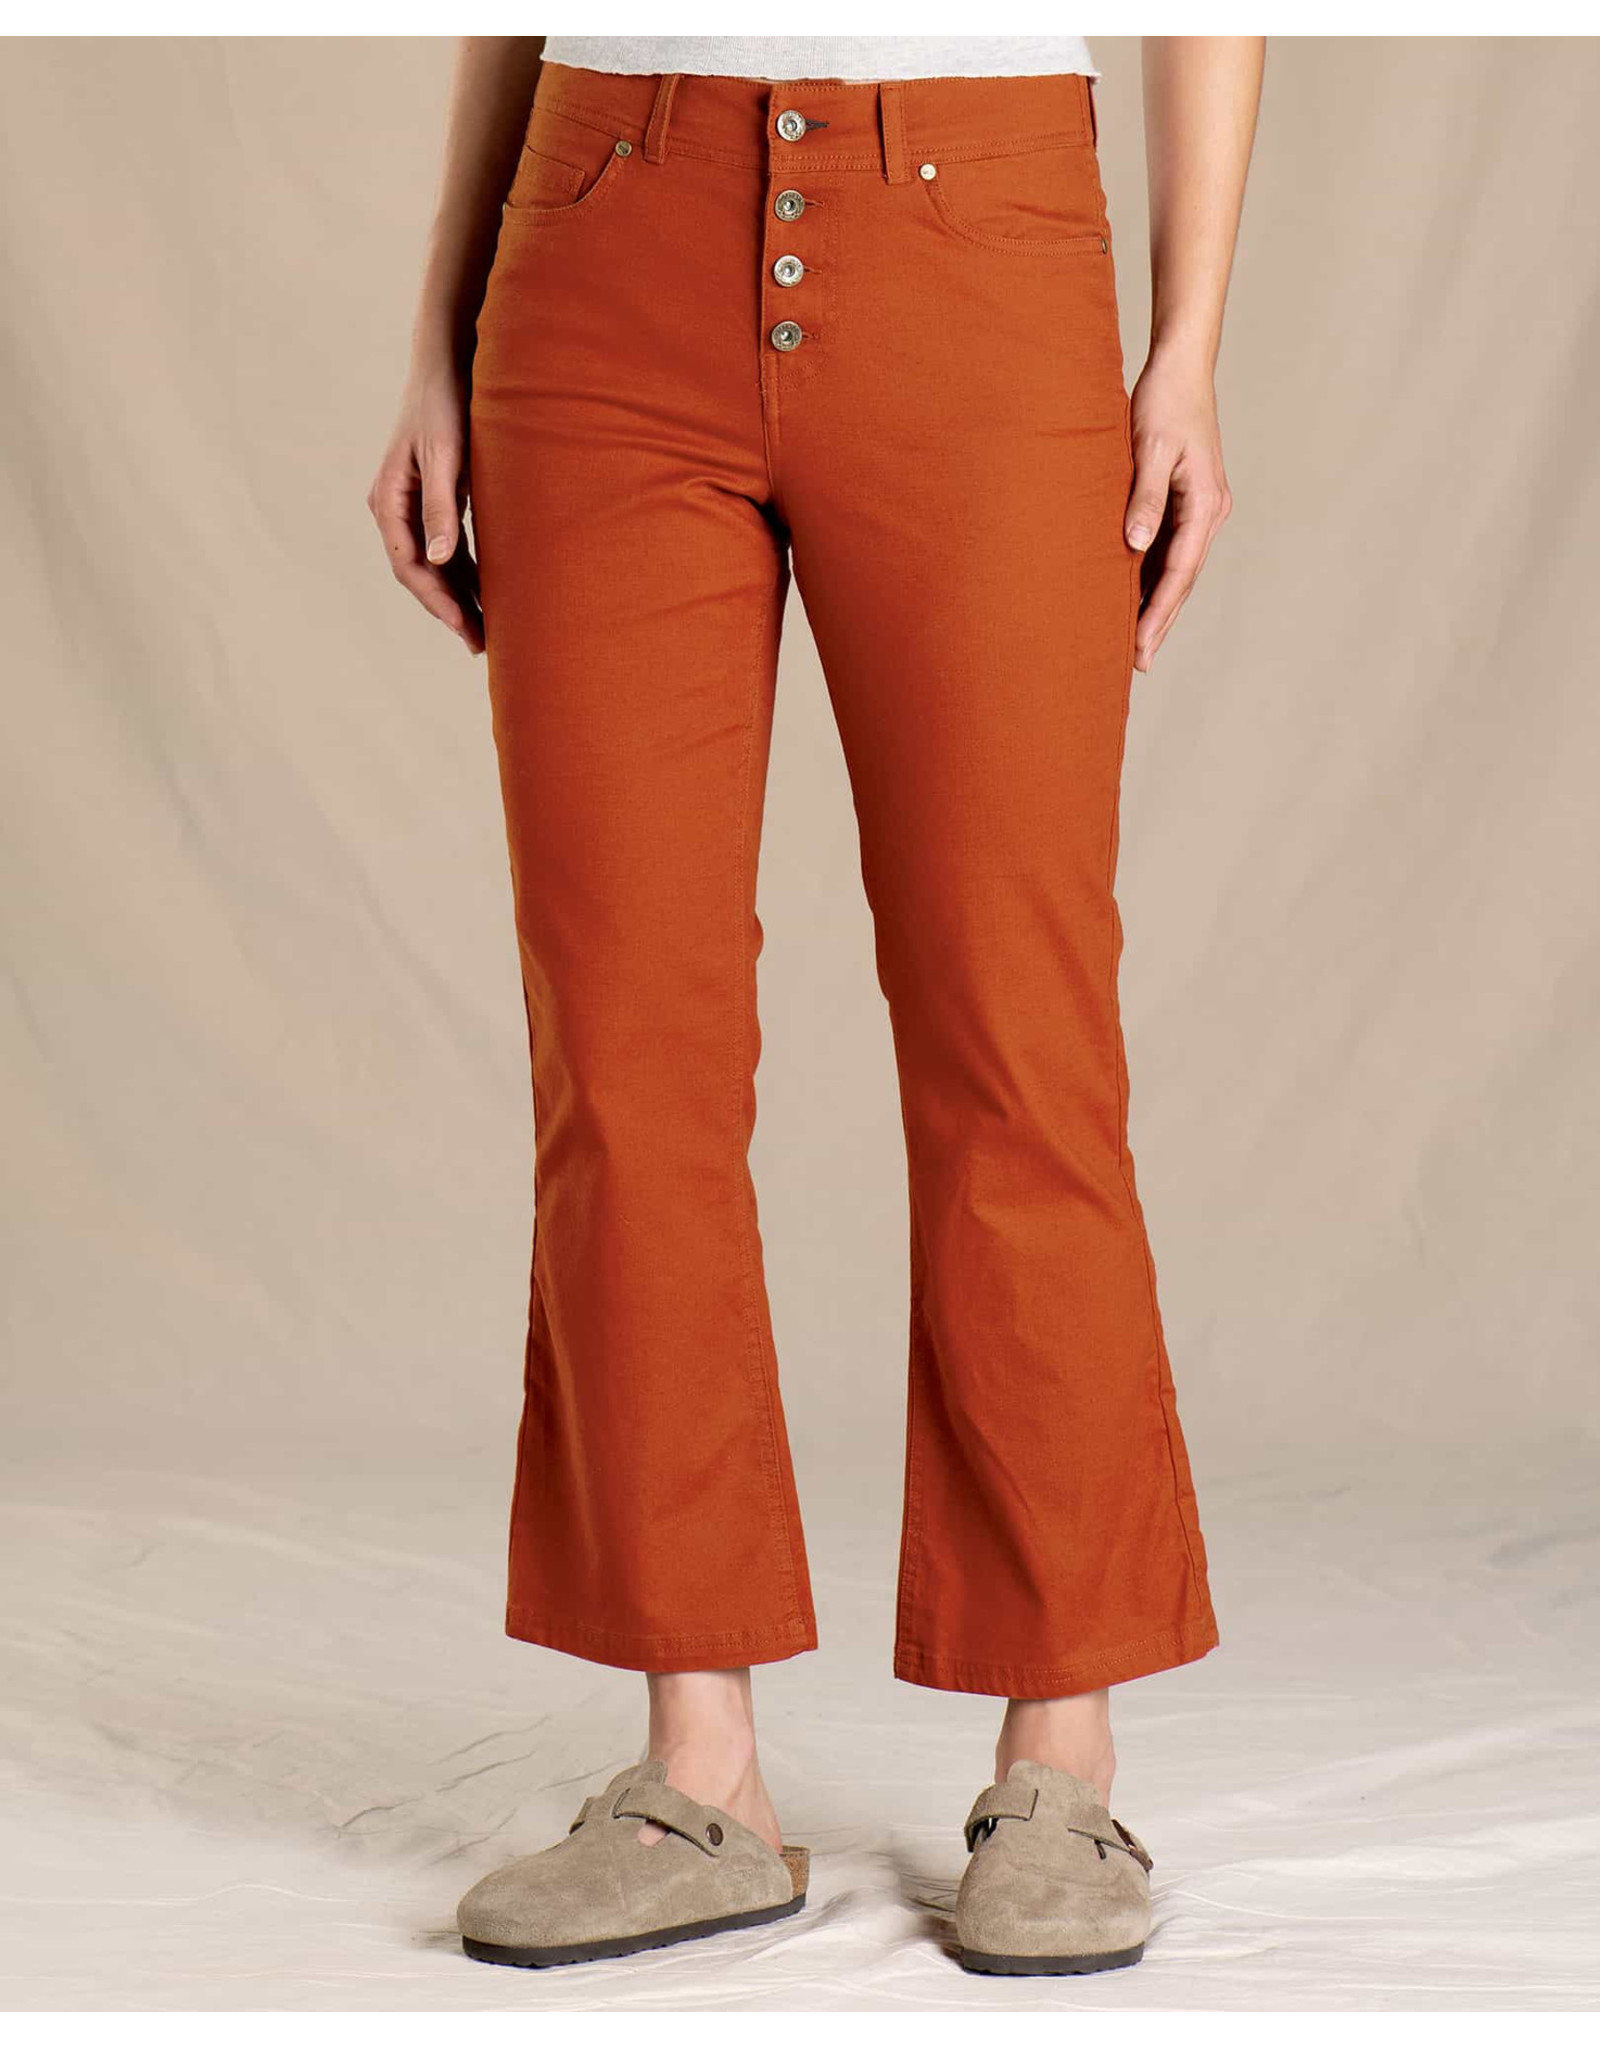 toad & co WOMEN'S TOAD & CO. EARTHWORKS KICK FLARE PANT-PICANTE